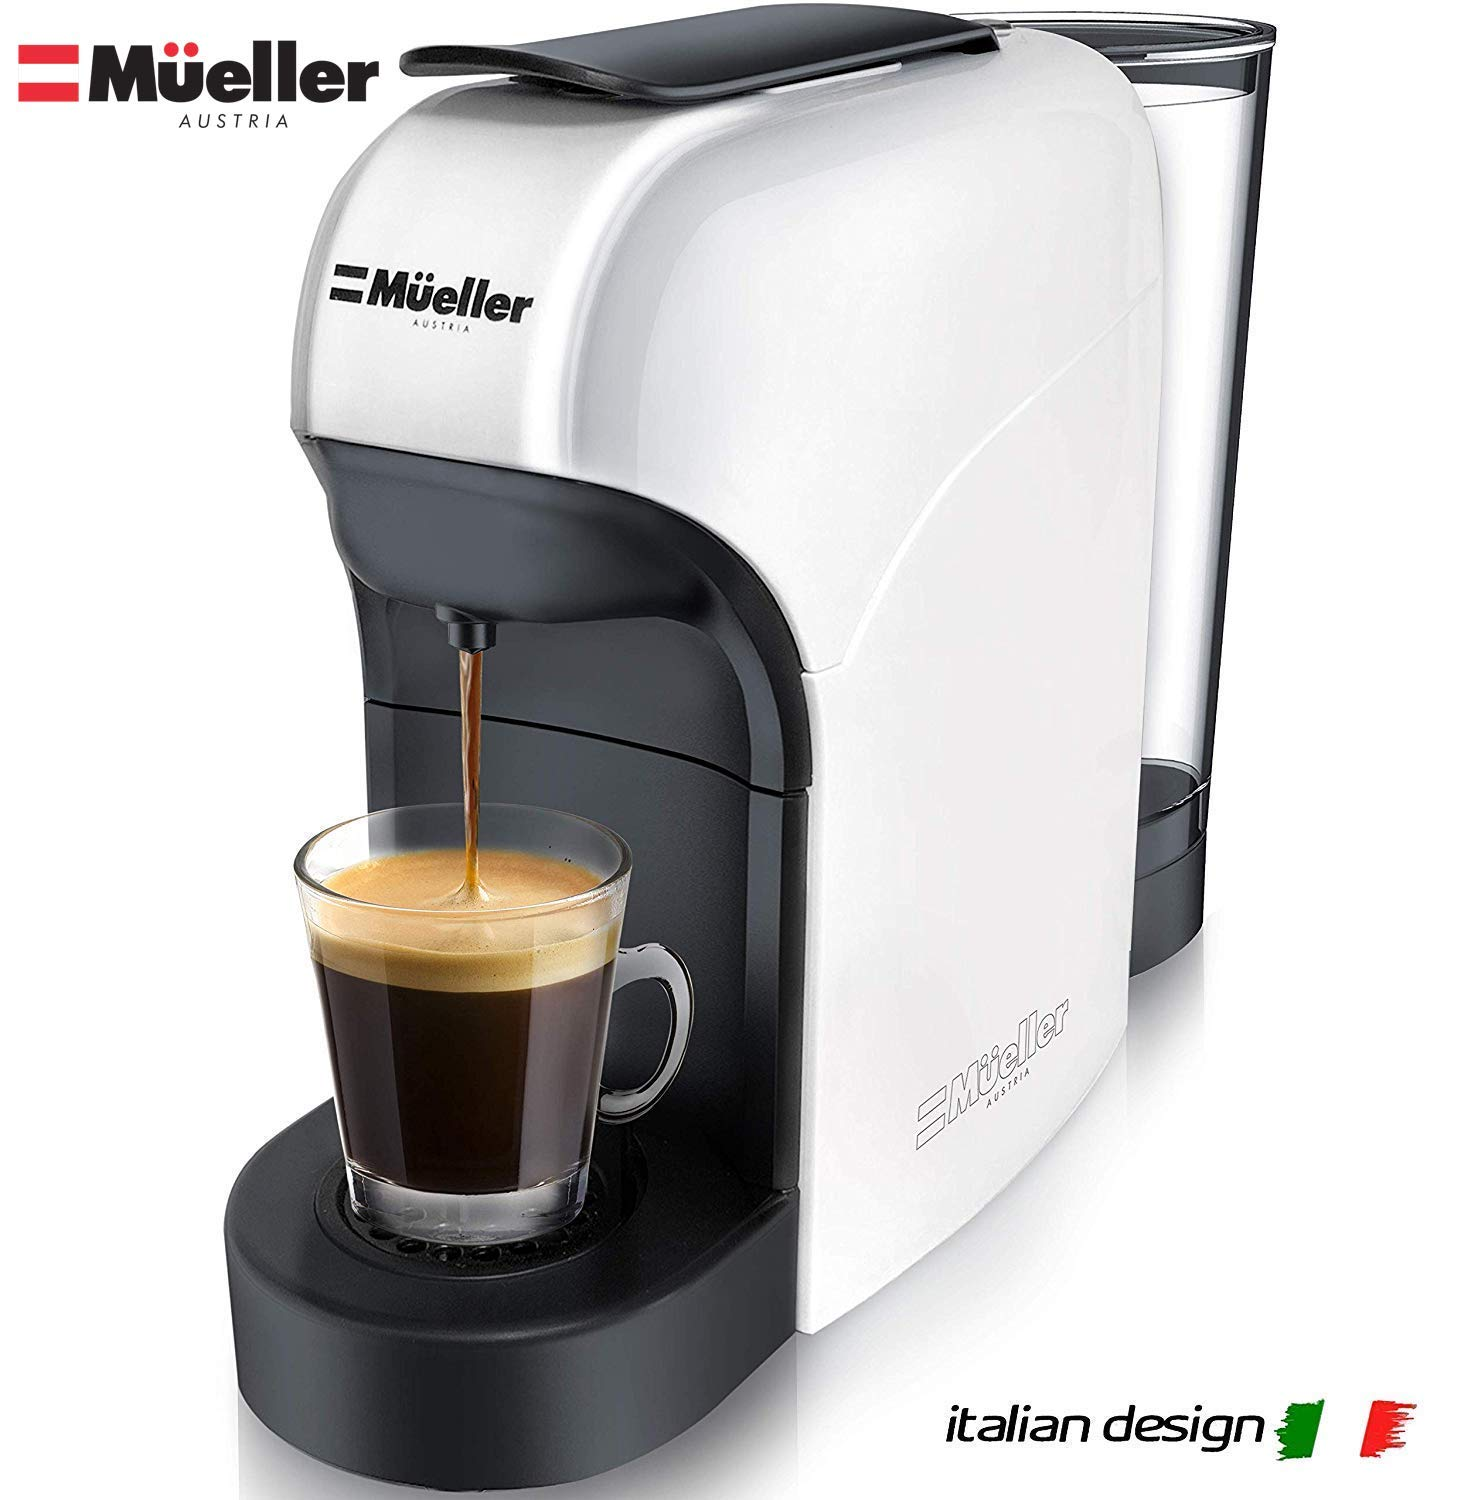 Mueller Espresso Machine for Nespresso Compatible Capsule, Premium Italian 20 Bar High Pressure Pump, 25s Fast Heating with Energy Saving System, Programmable Buttons for Espresso and Lungo, 1400W by Mueller Austria (Image #1)